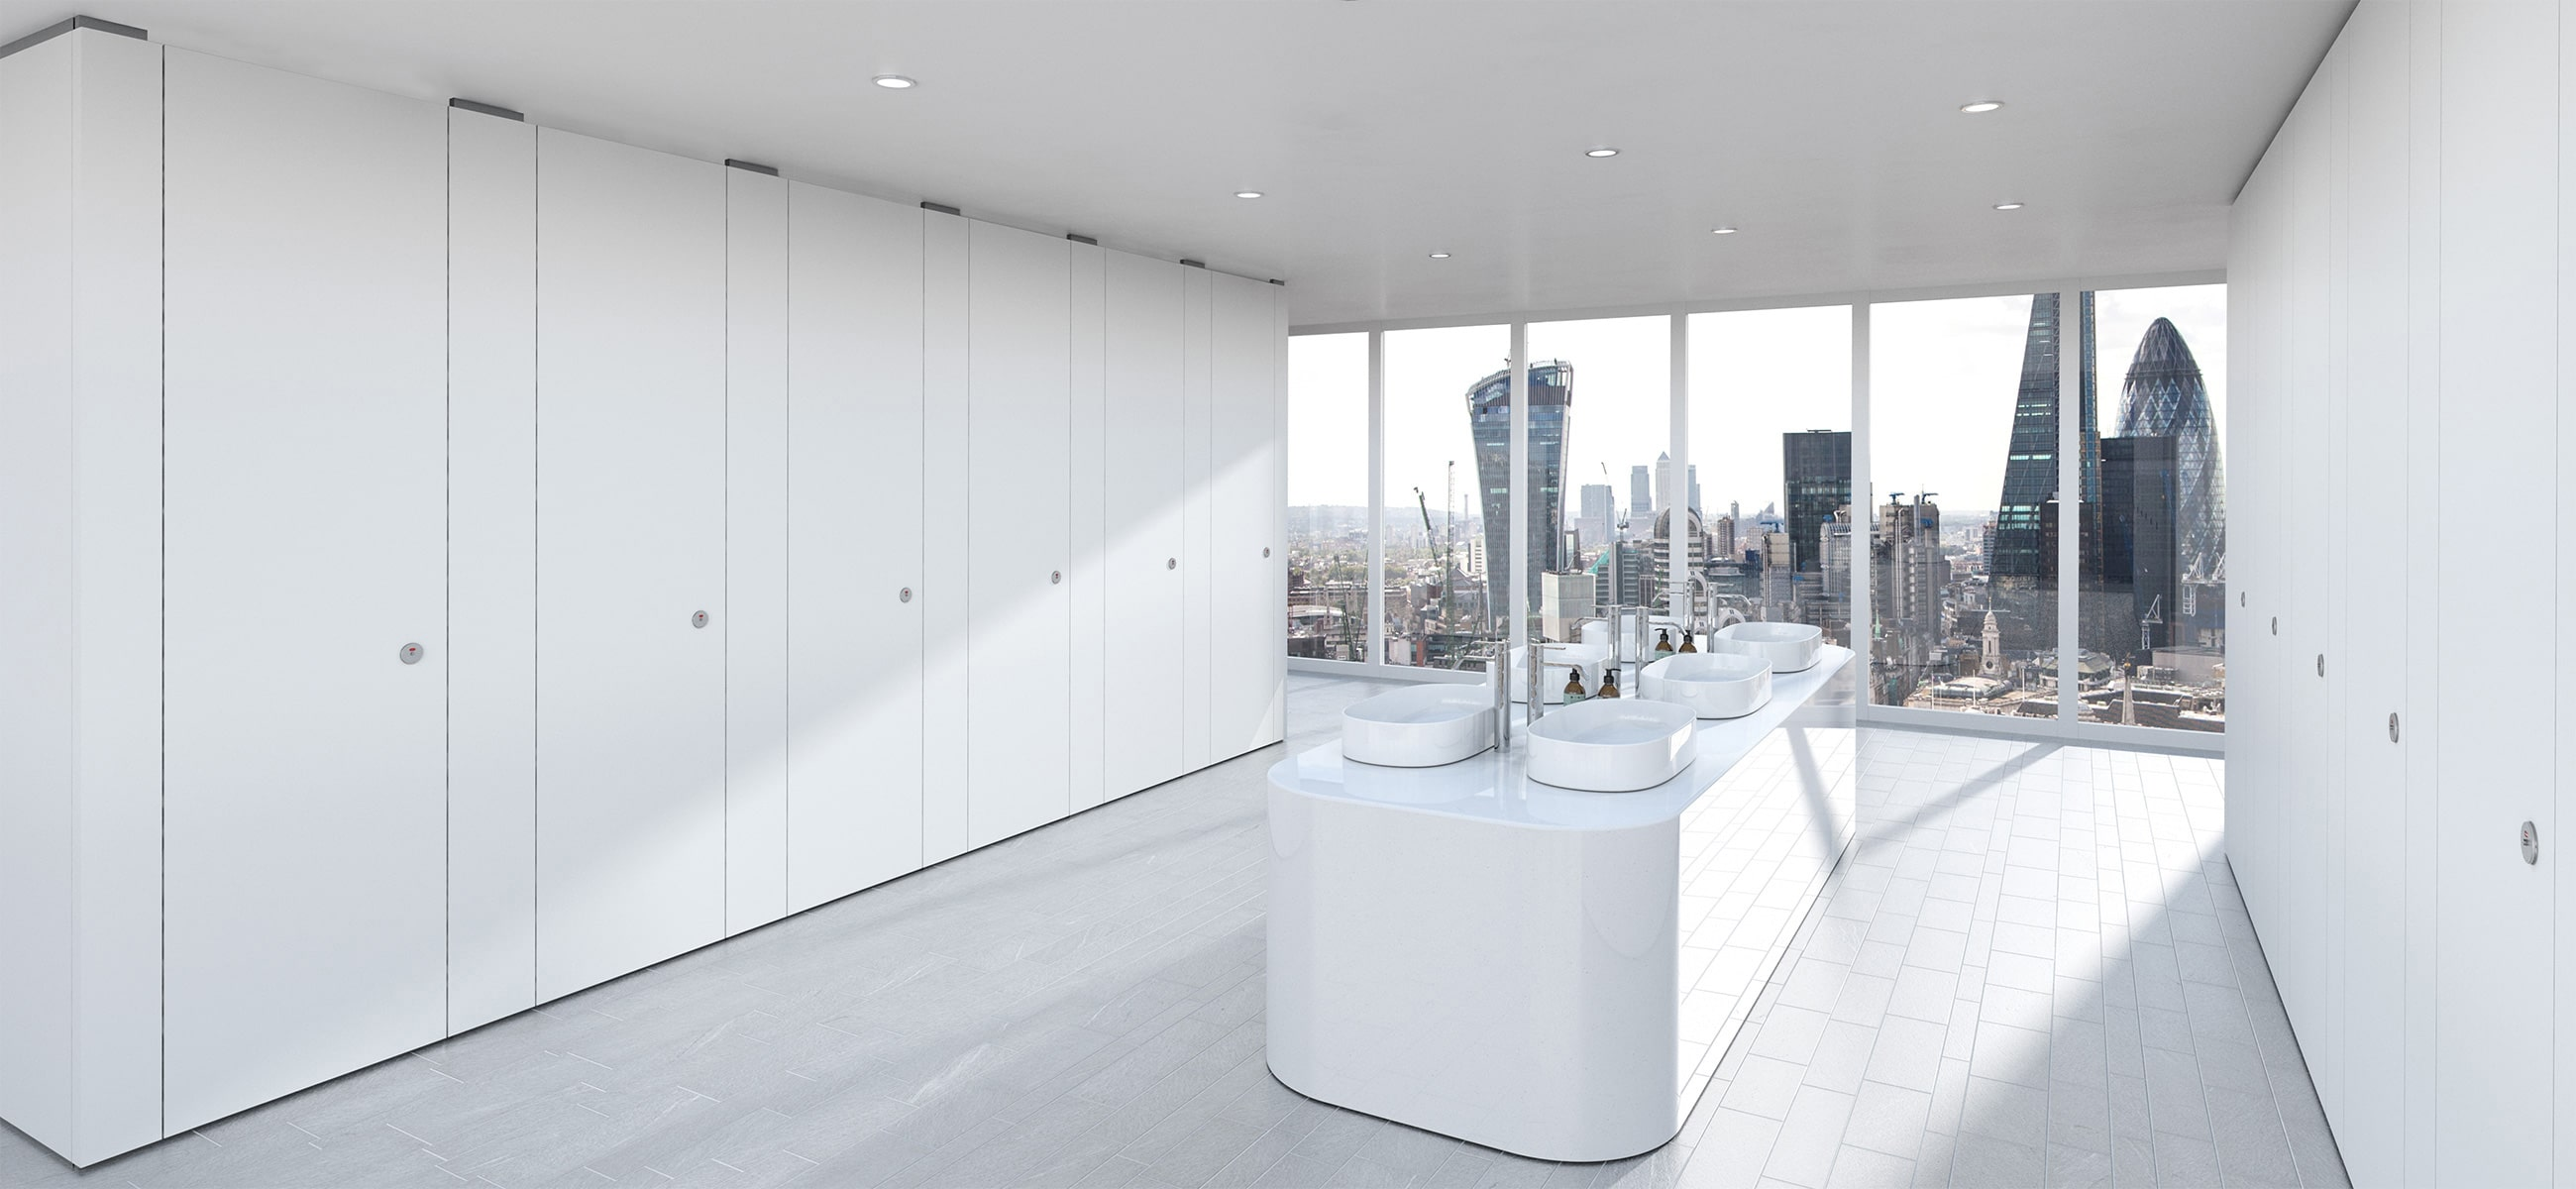 Luxury Commercial Washrooms Finished in Sylan White ColourCoat